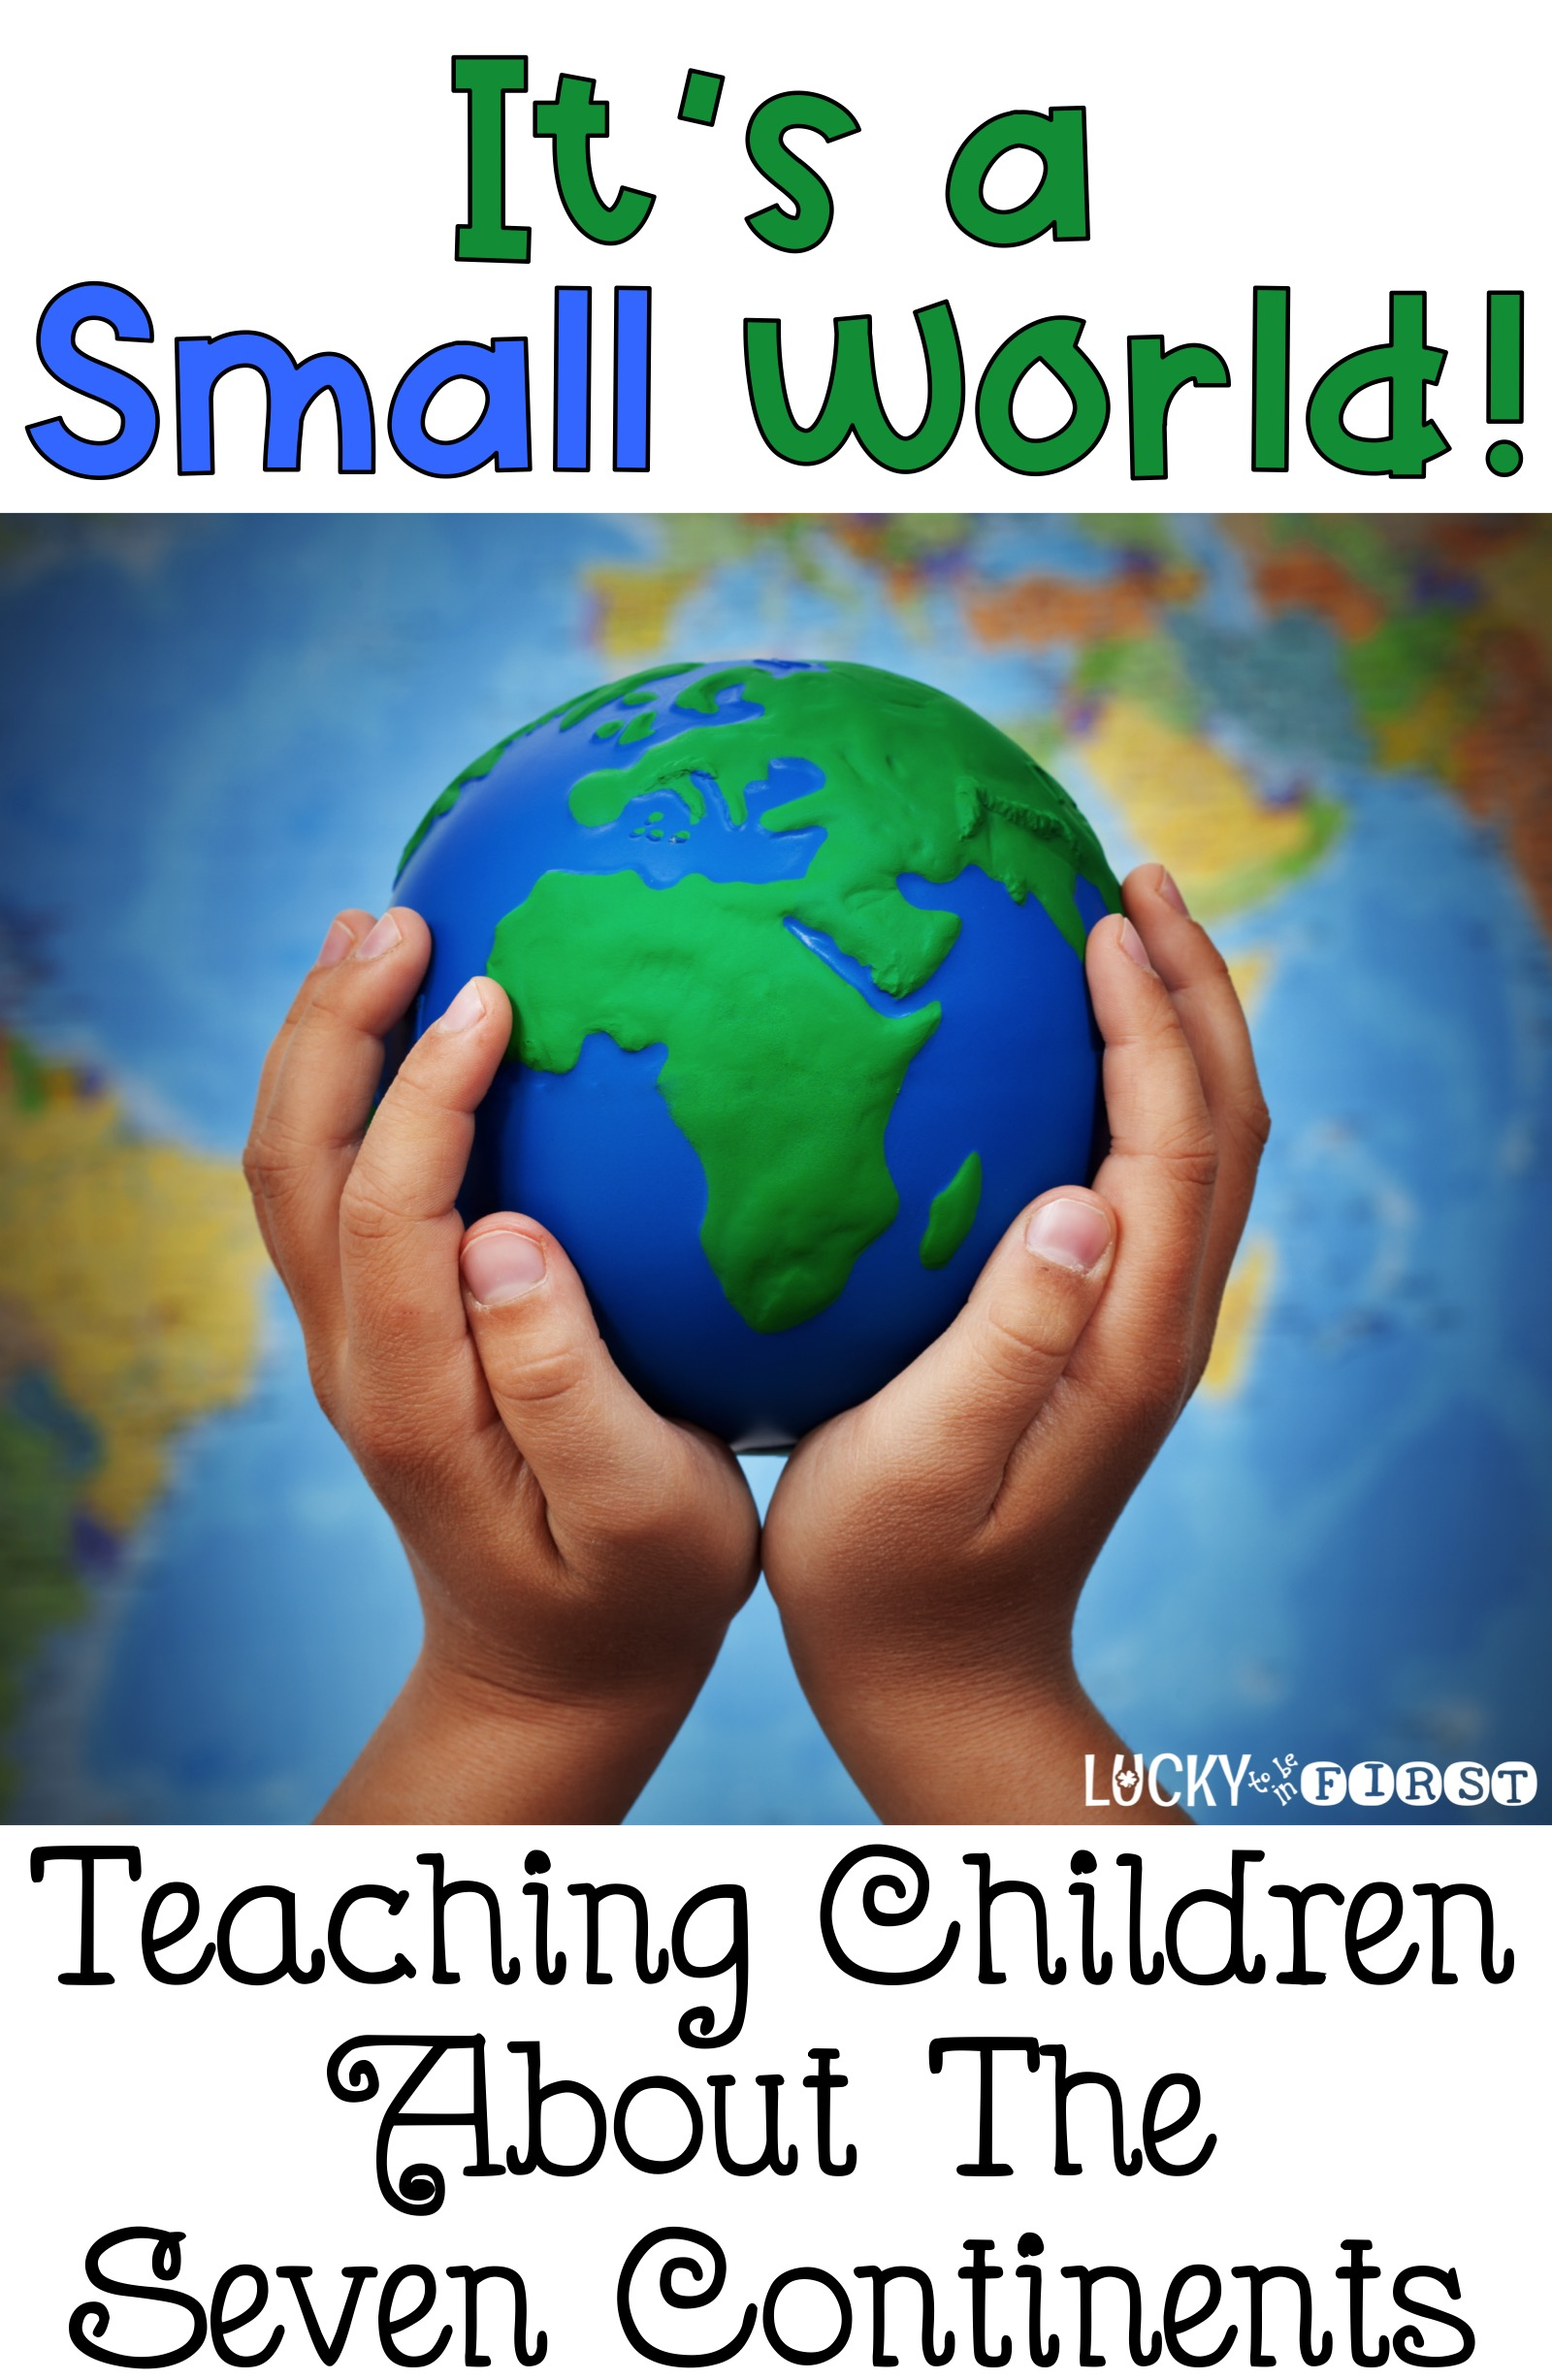 Teach your students about the 7 Continents with these activities, projects & games!